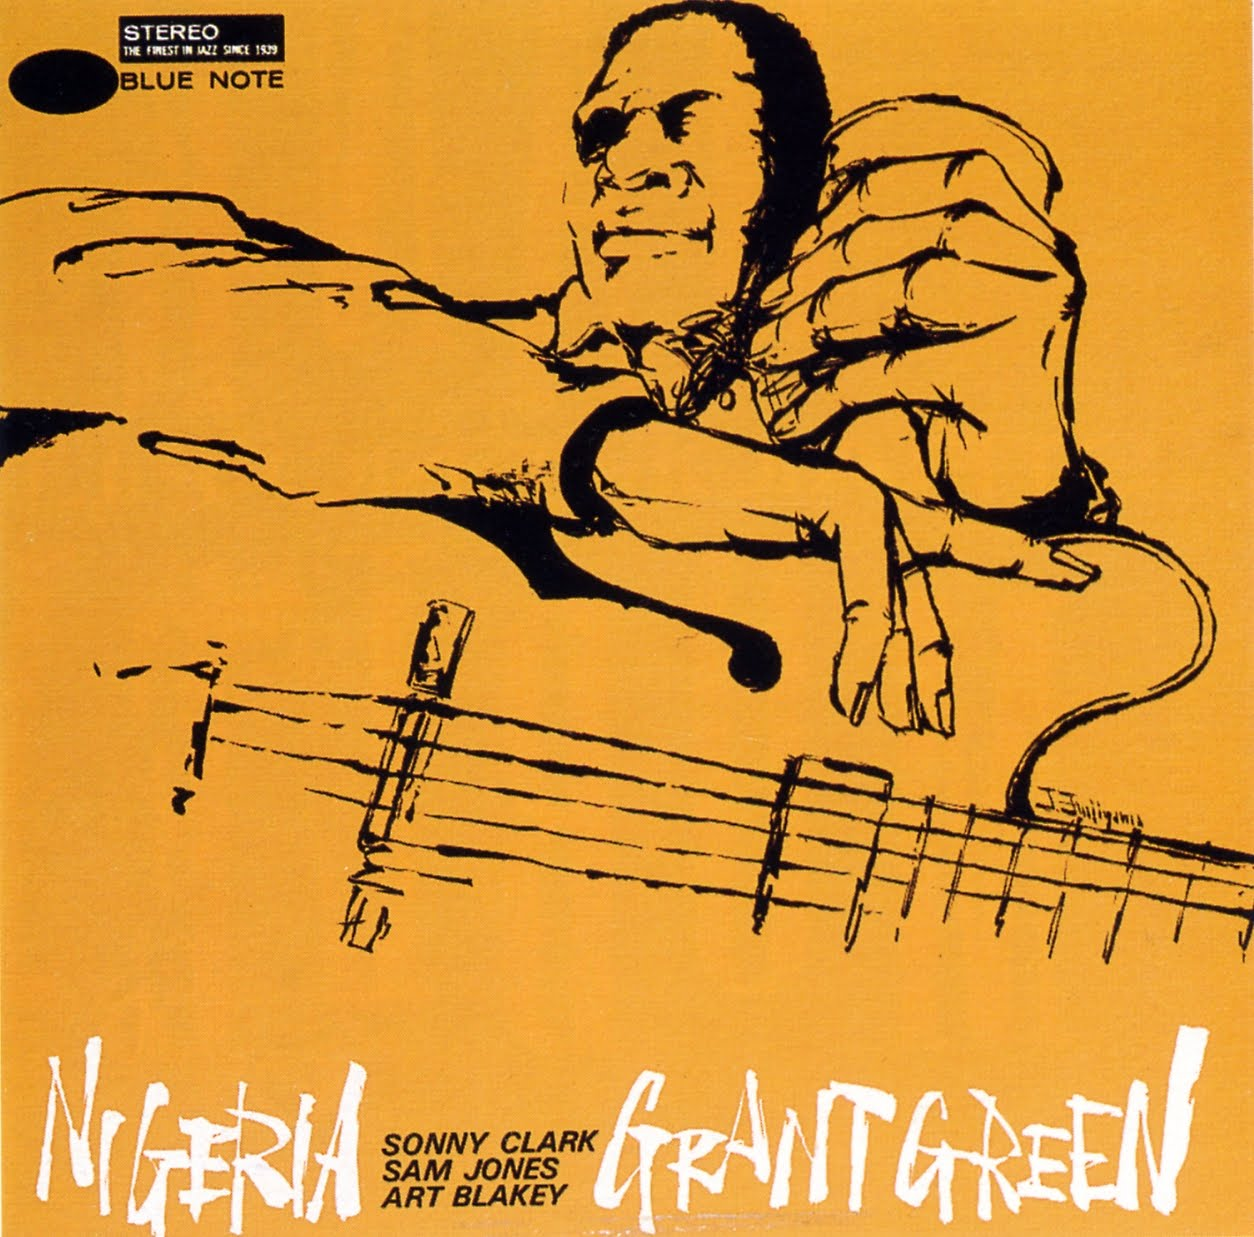 grant green - nigeria (album art)